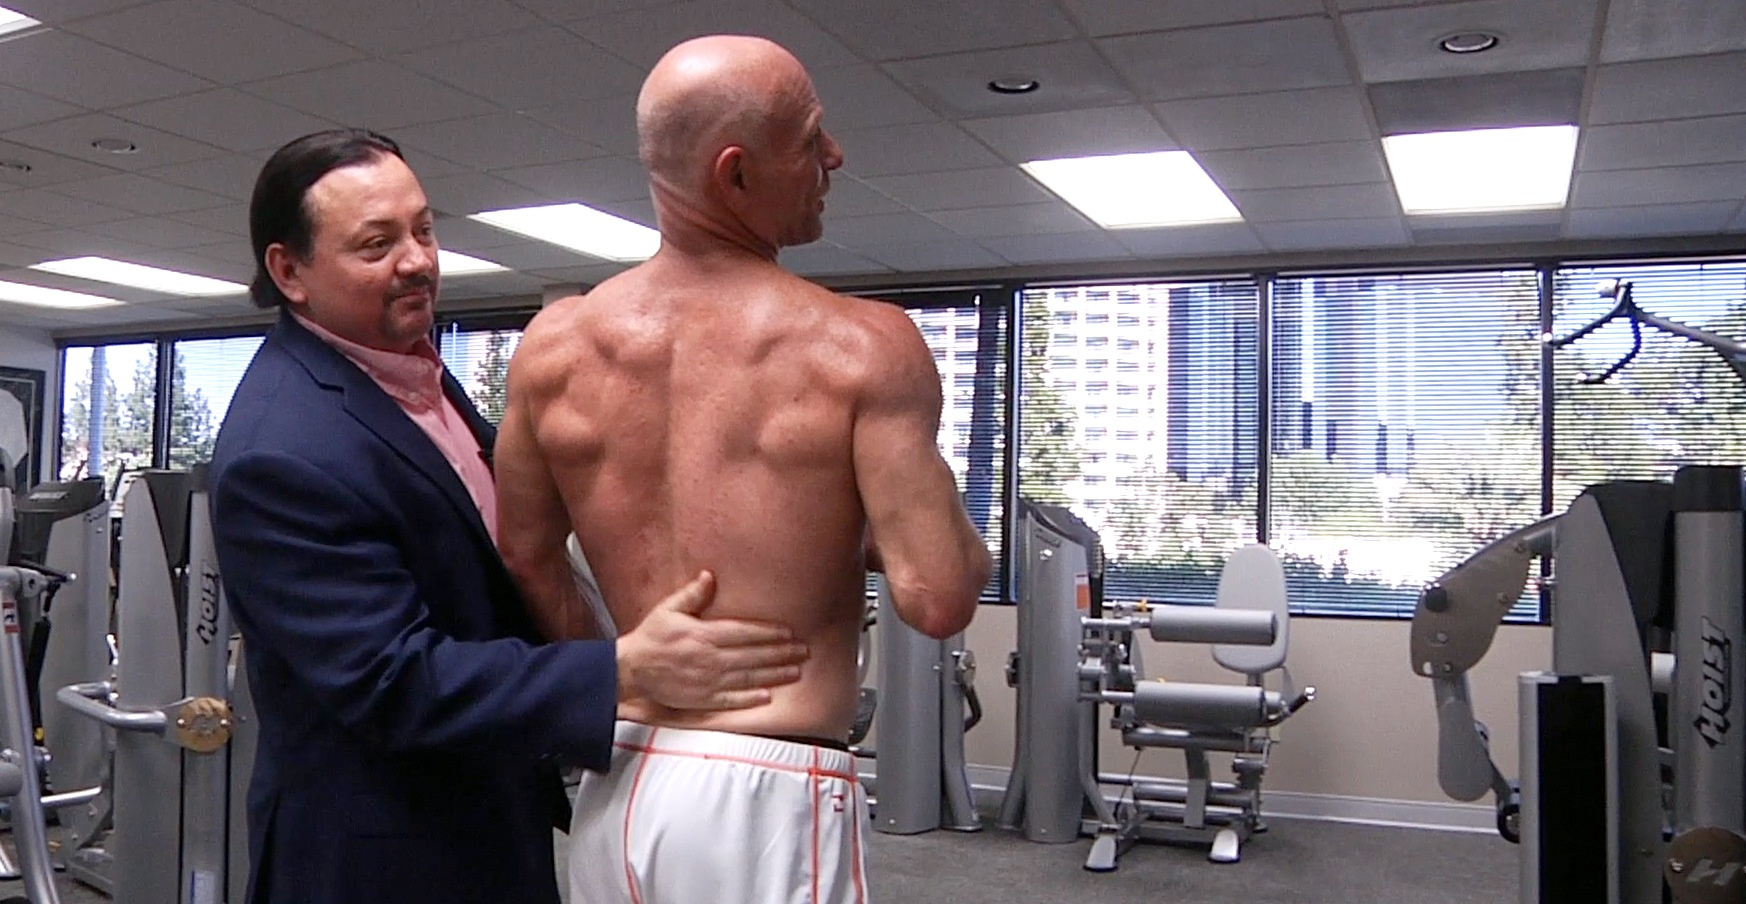 Darren Kavinoky Enjoying the Results he Achieved in Brian's Health and Physical Fitness Program